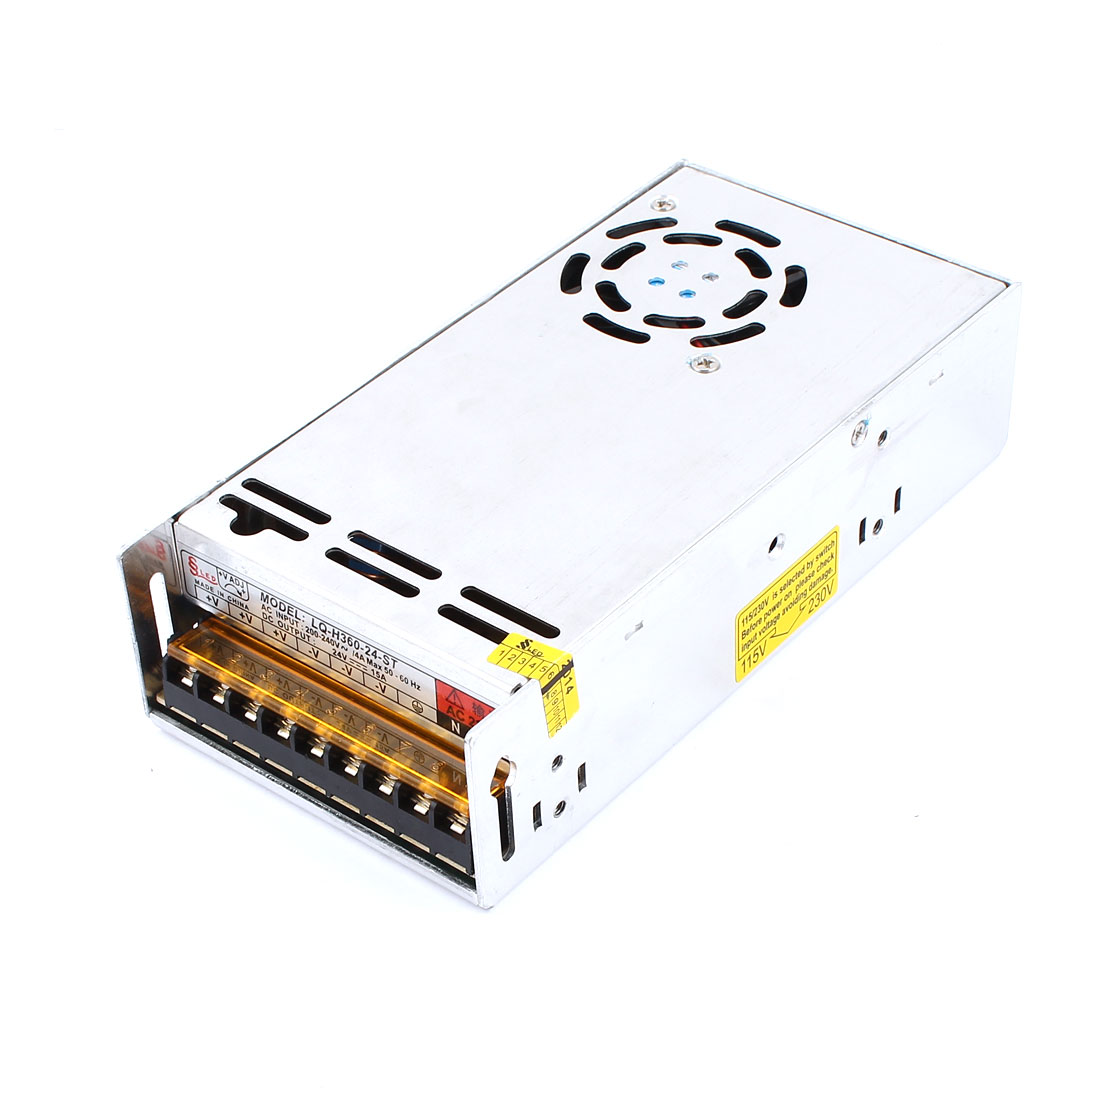 AC 200-240V to DC 24V 15A Switch Power Supply Driver Converter Transformer for LED Striplight Display